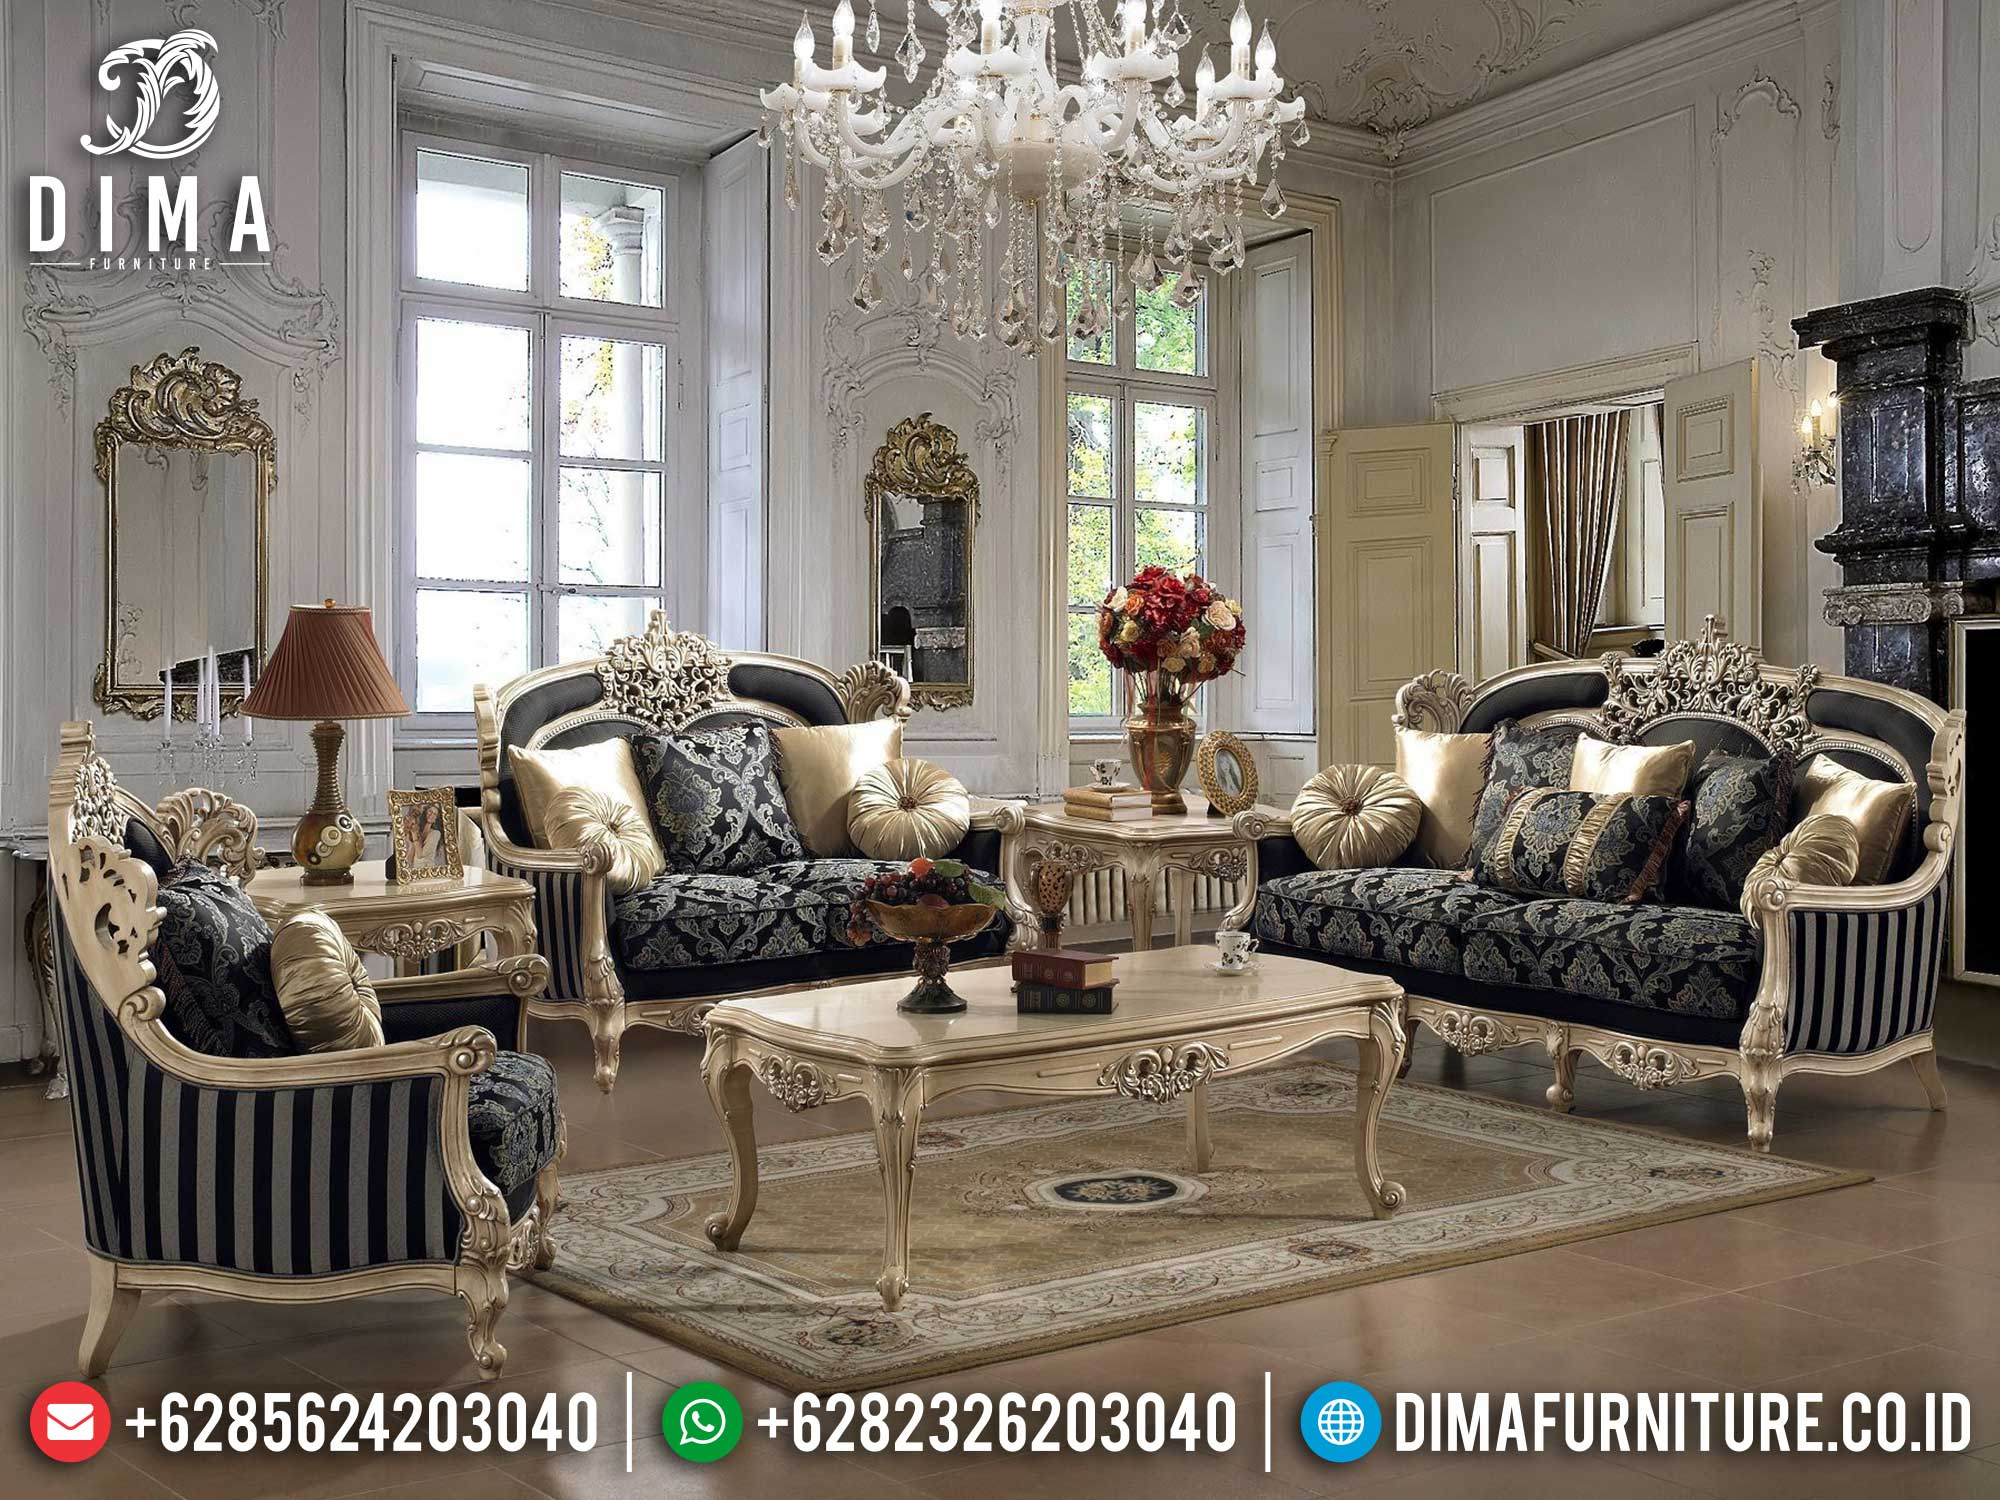 Harga Sofa Tamu Jepara Terbaru Luxurious Design Italian Carving Palace MM-1081